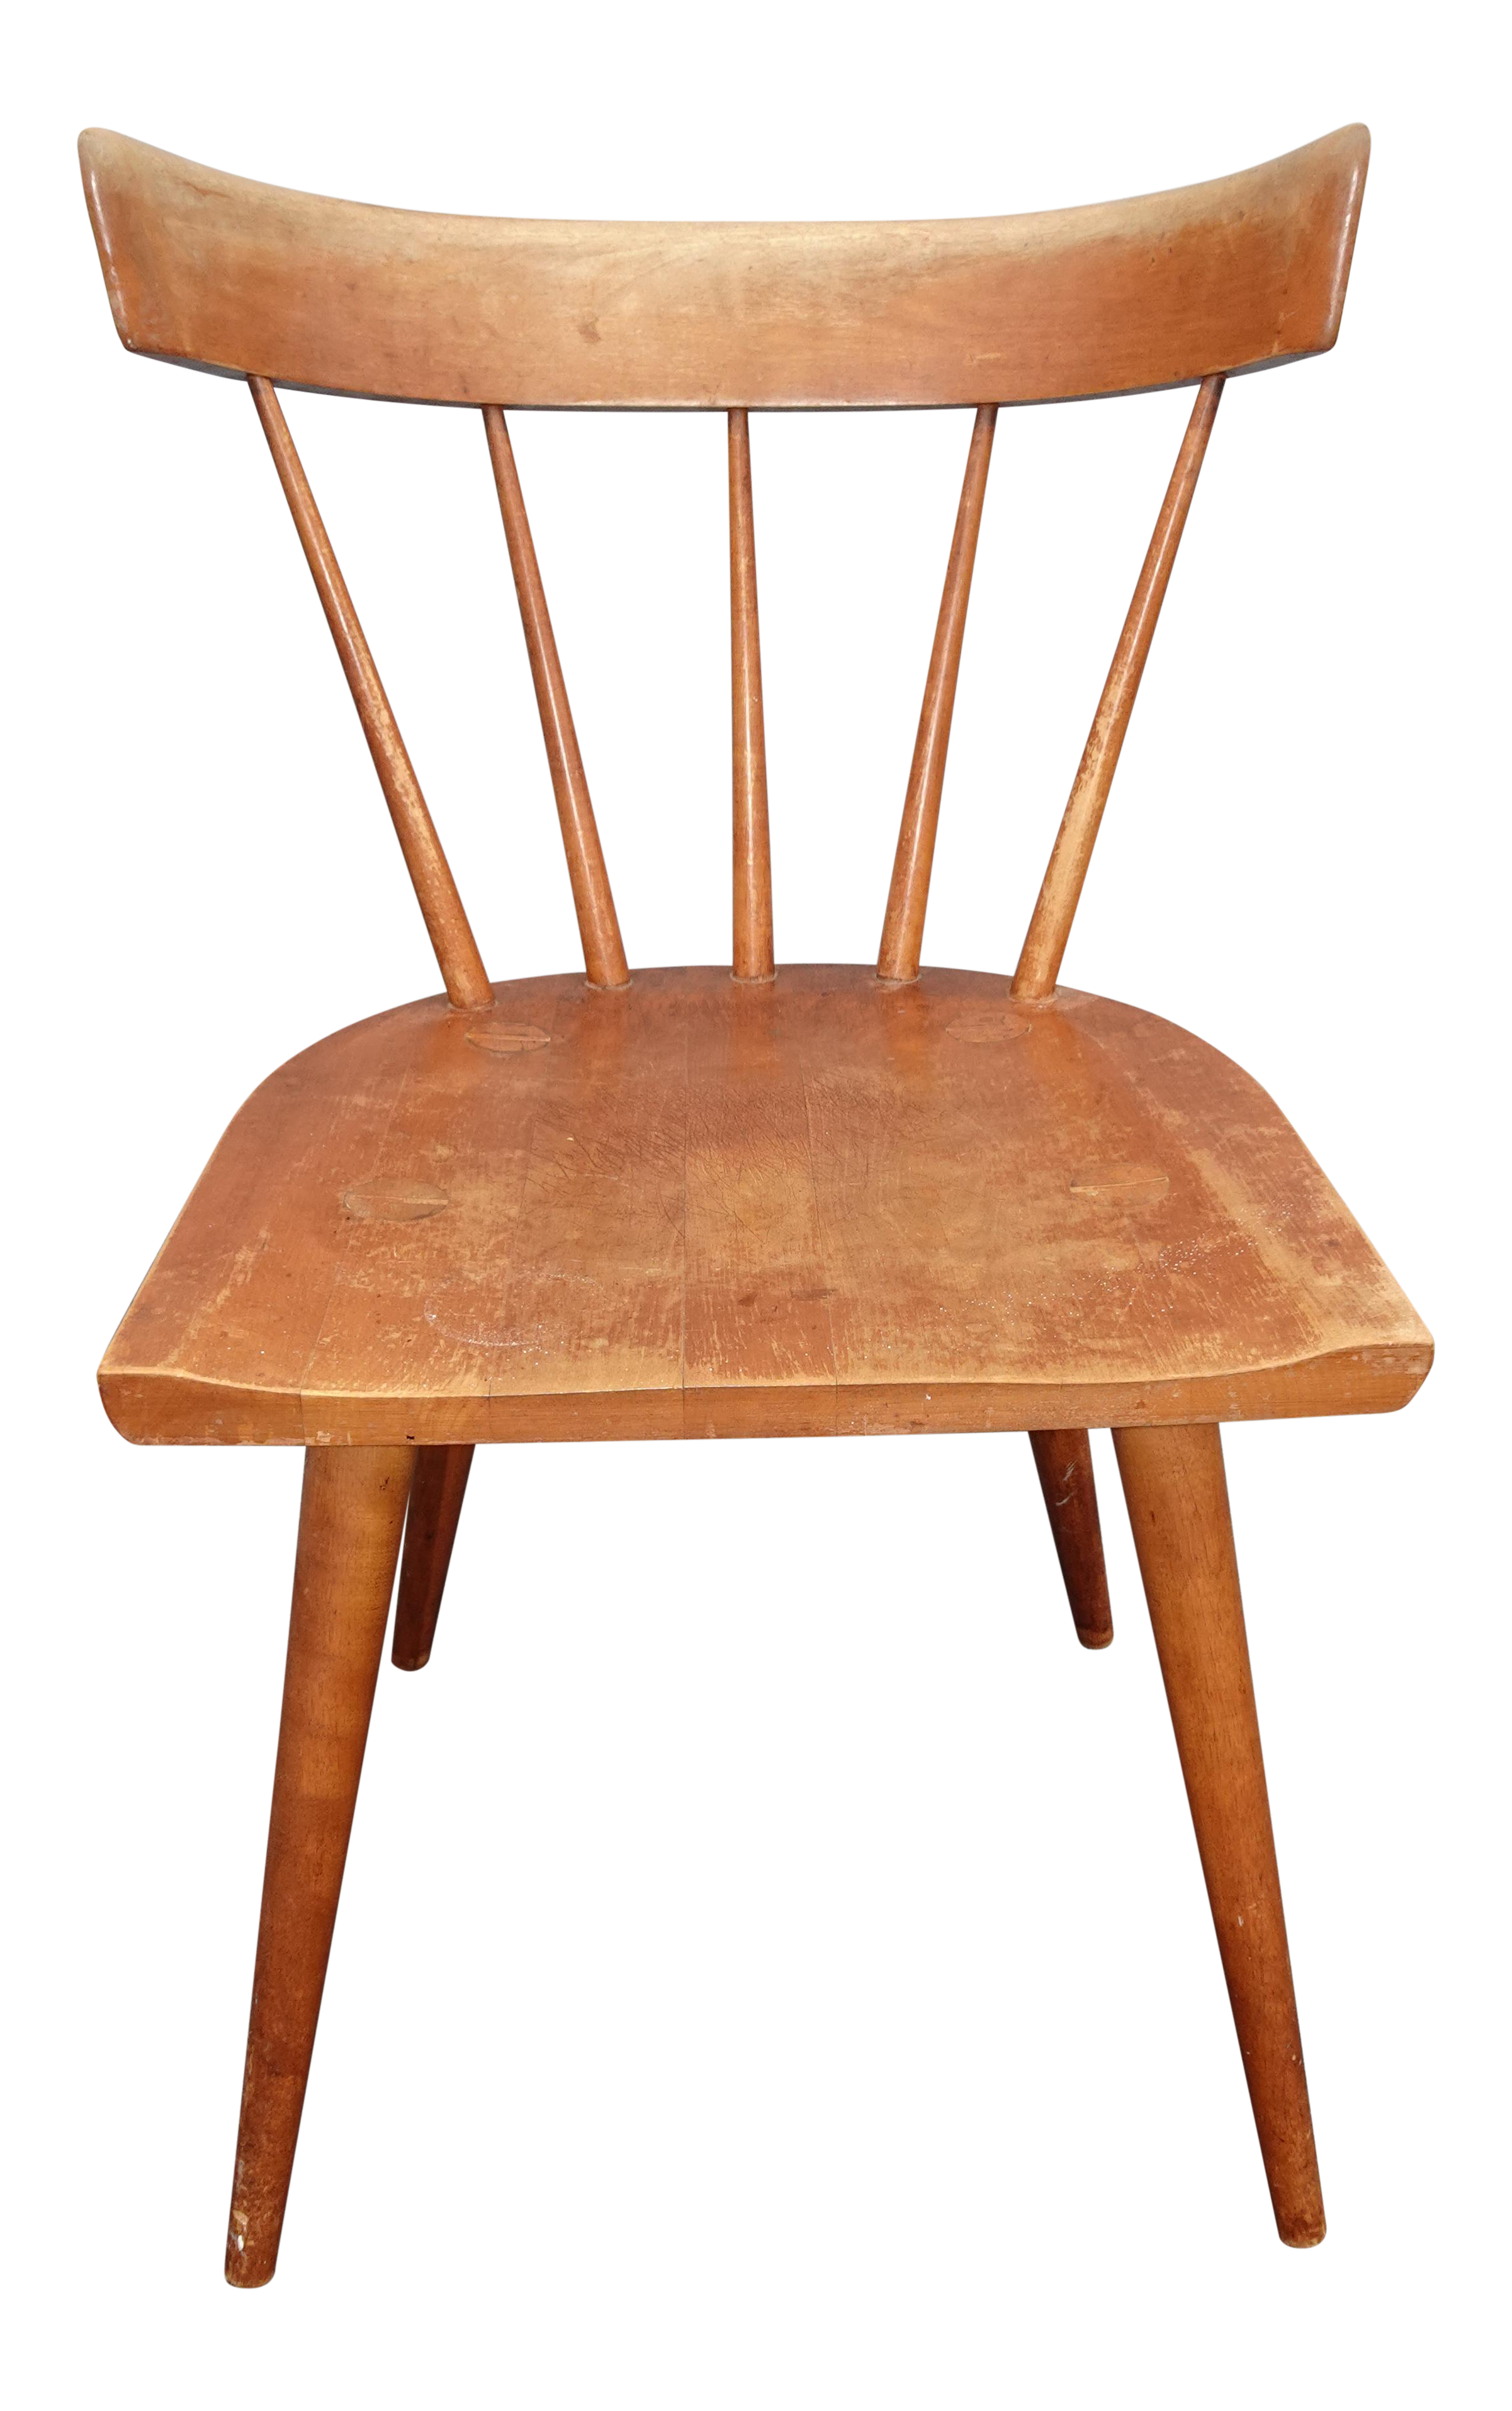 Vintage Mid Century Modern Paul Mccobb Planner Group Chair W Spindle Backrest 1